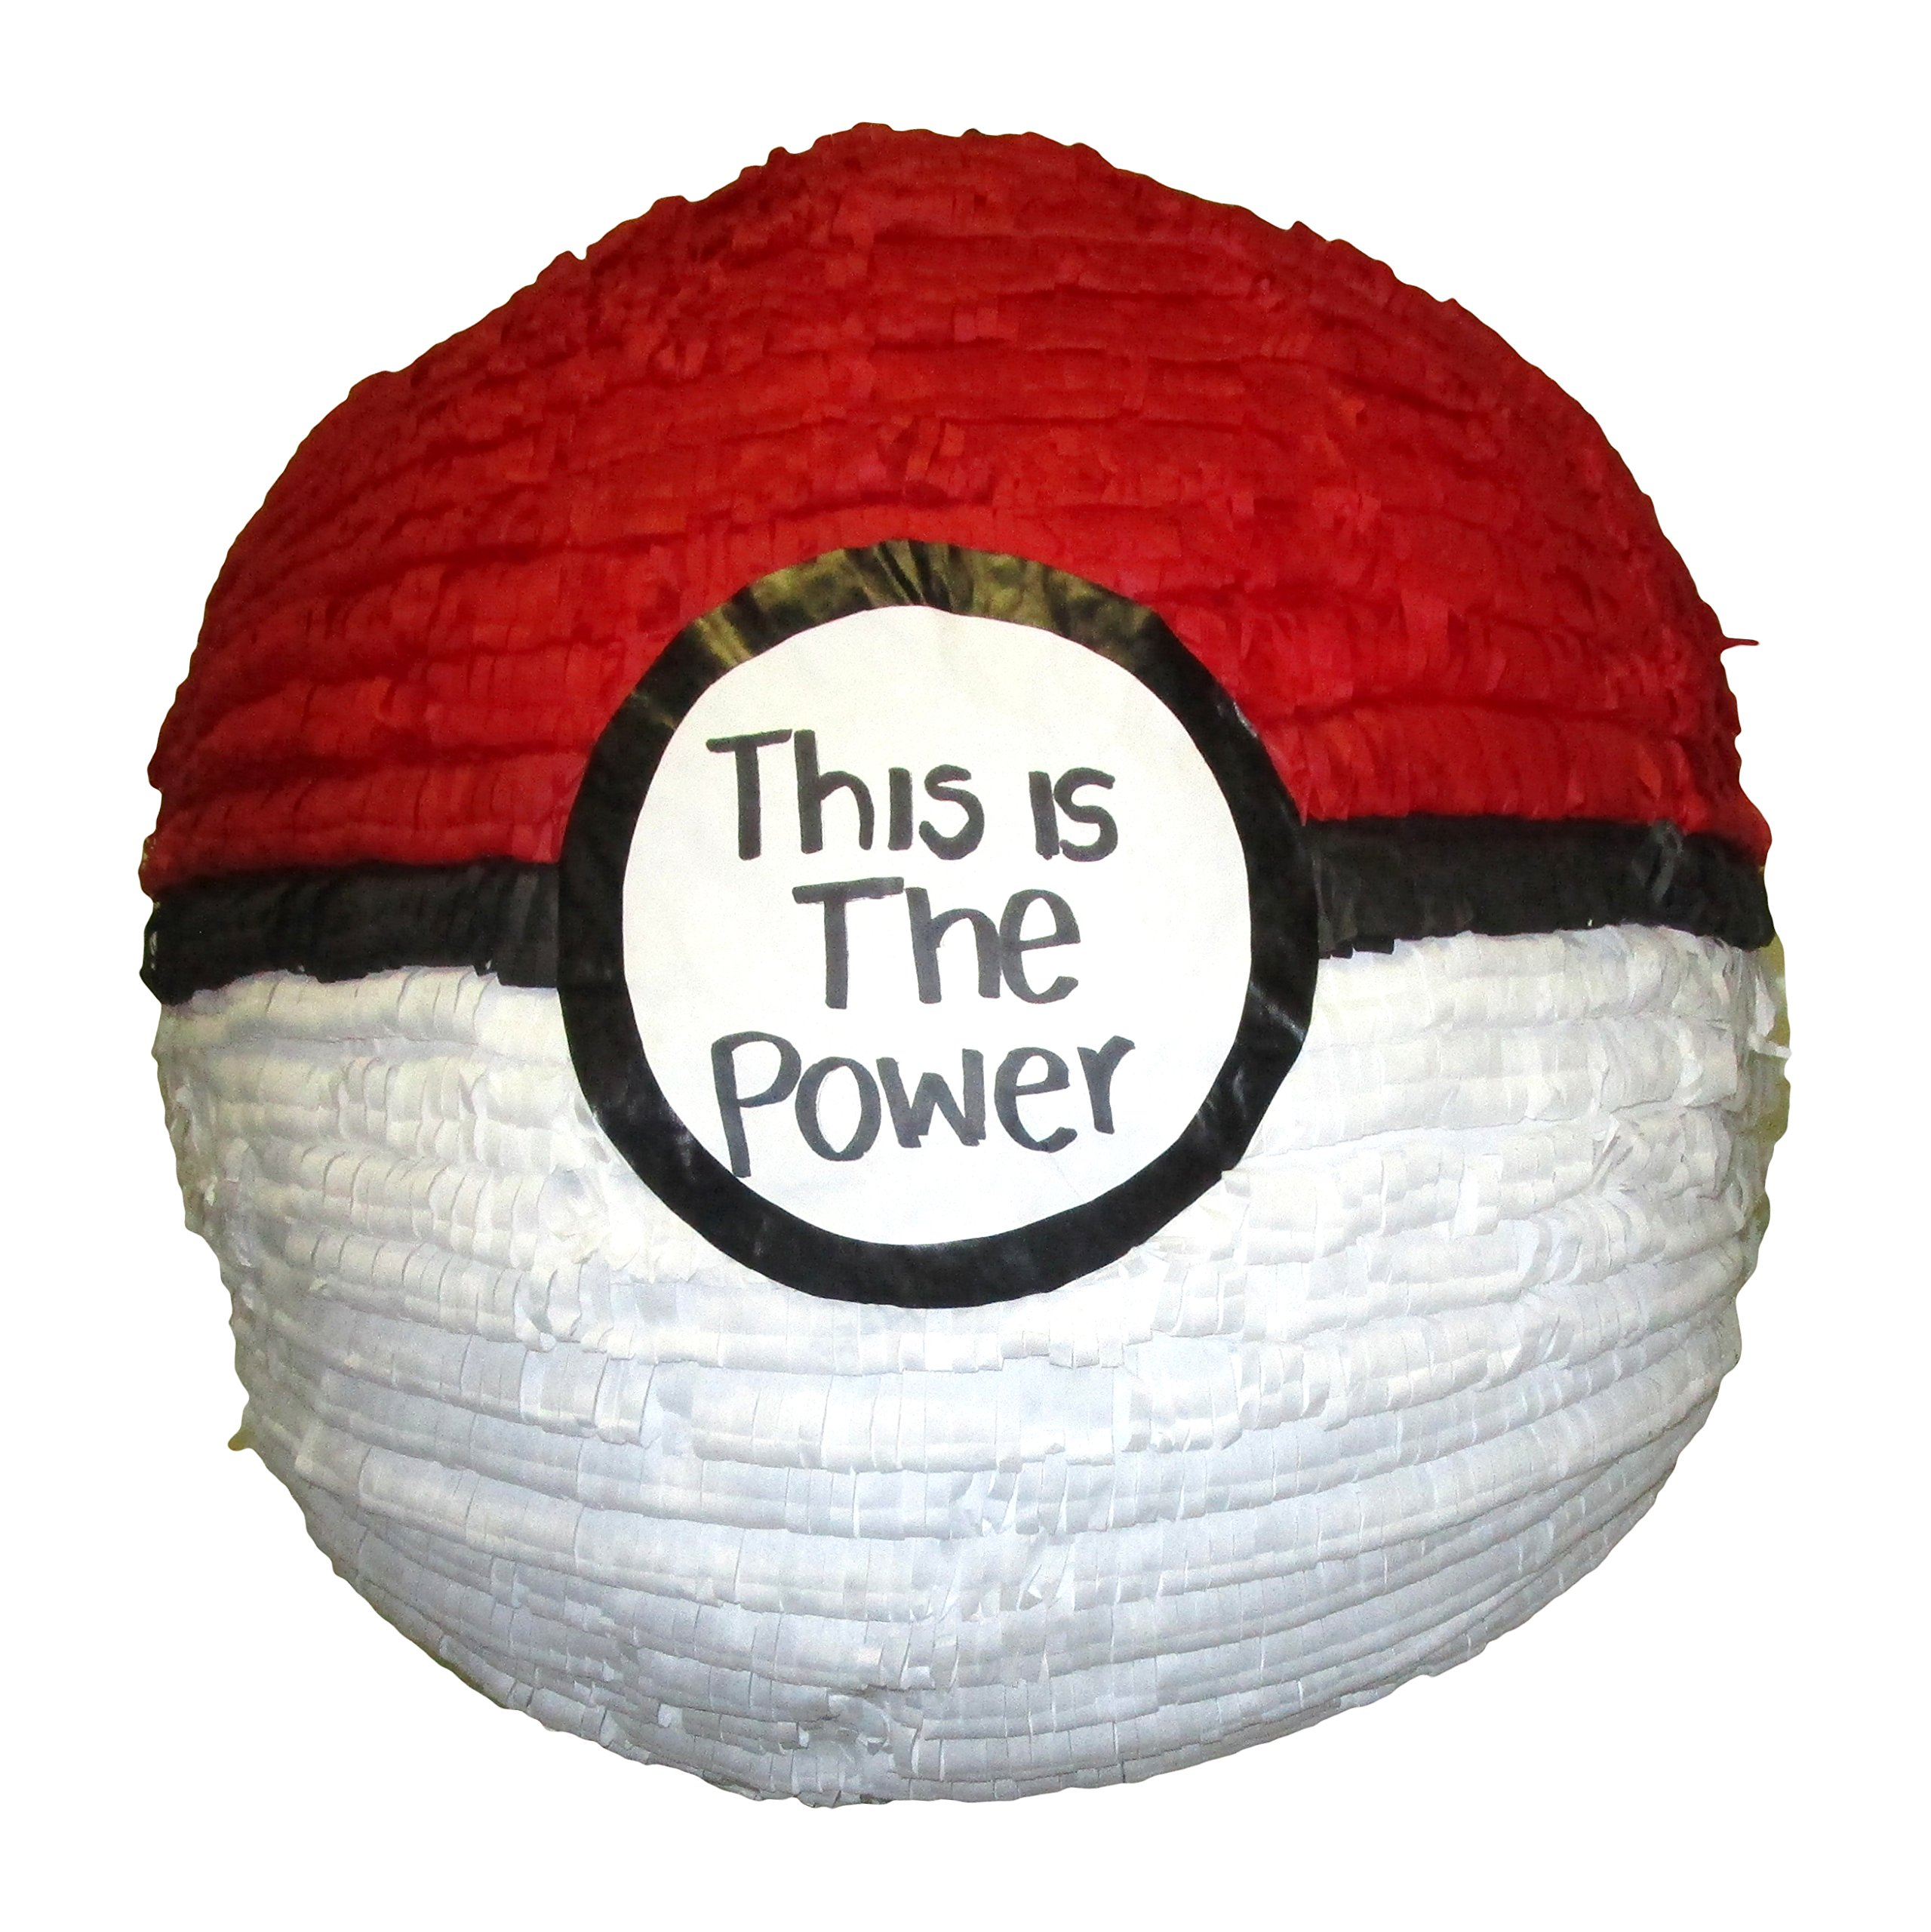 Pinatas Ball for Pokemon Party Theme, Game, Decoration and Photo Prop